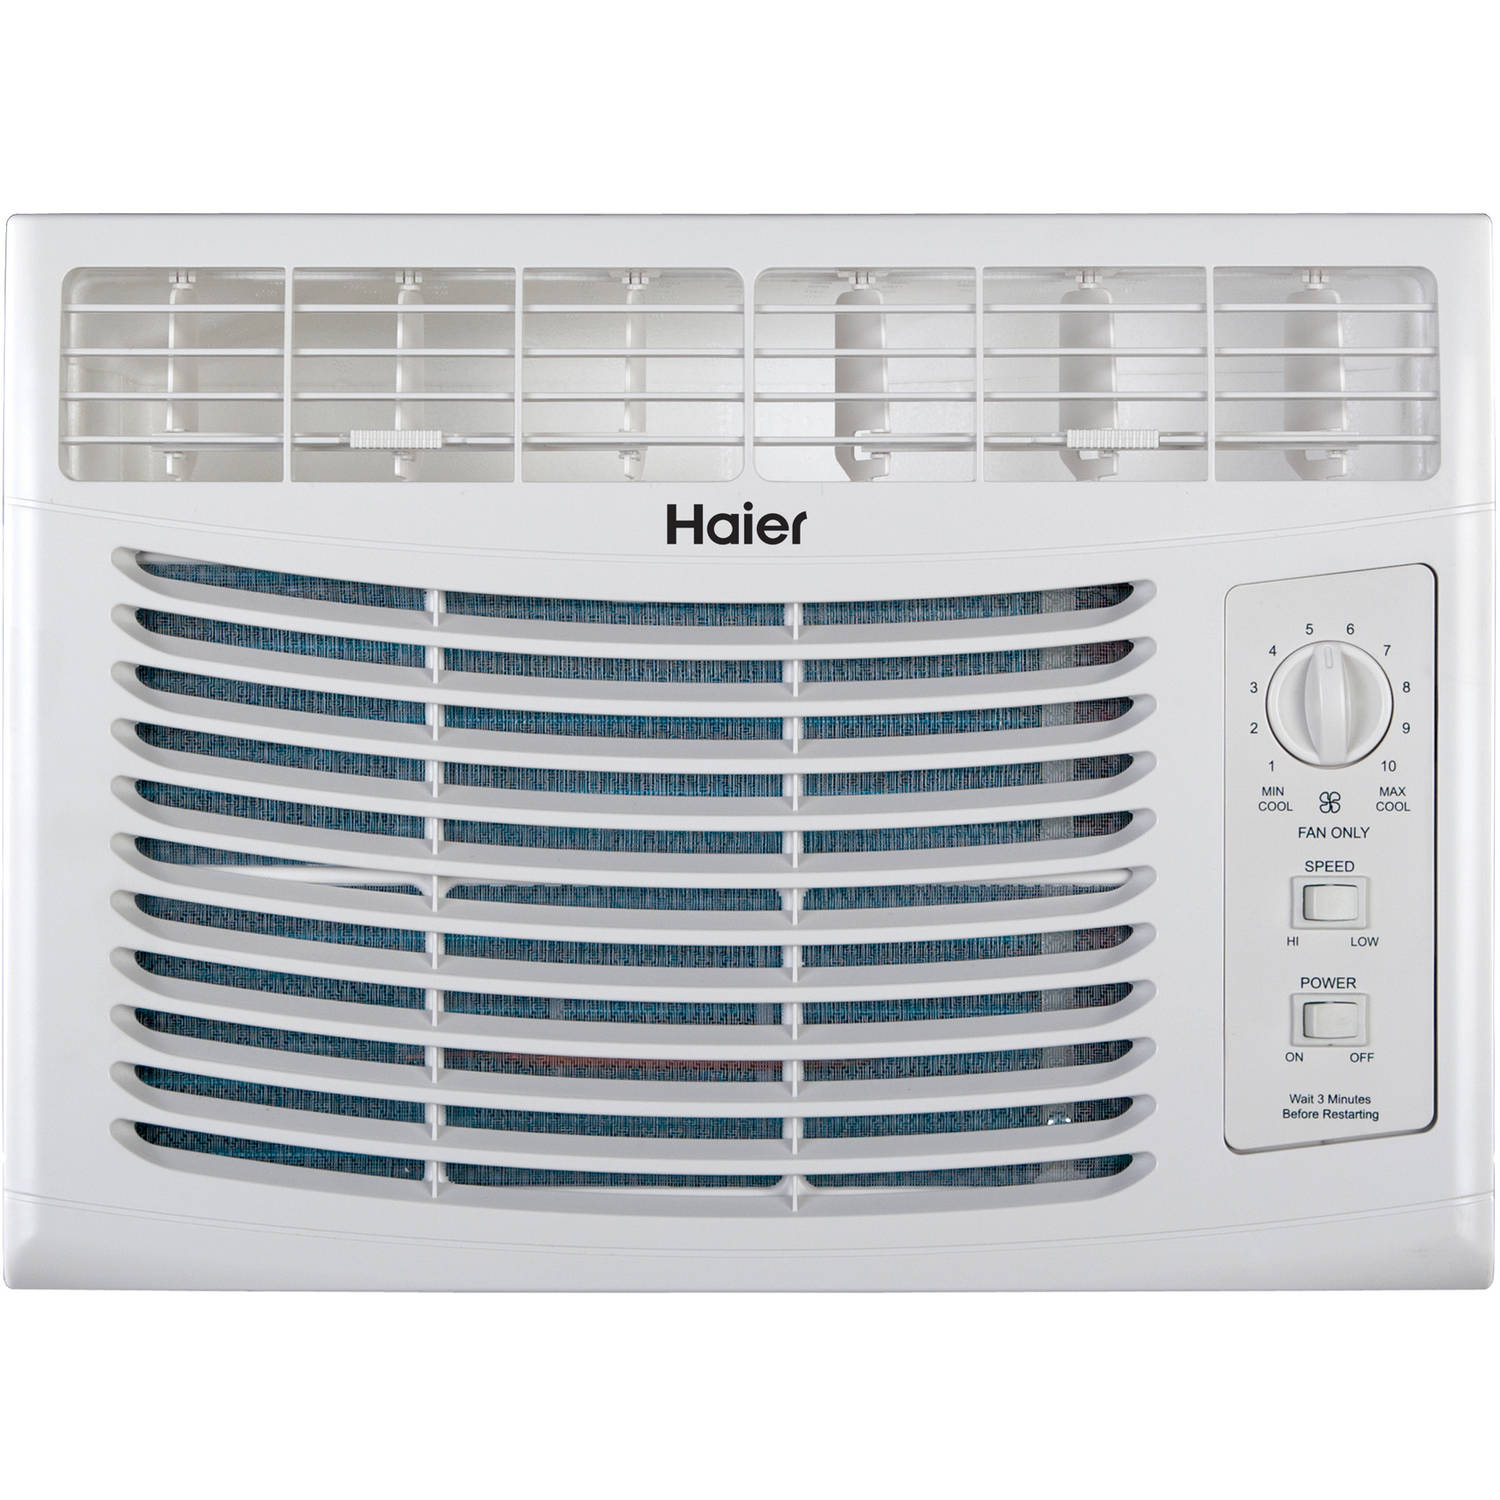 Haier 5,000 BTU Window Air Conditioner, 115V, HWF05XCR-L